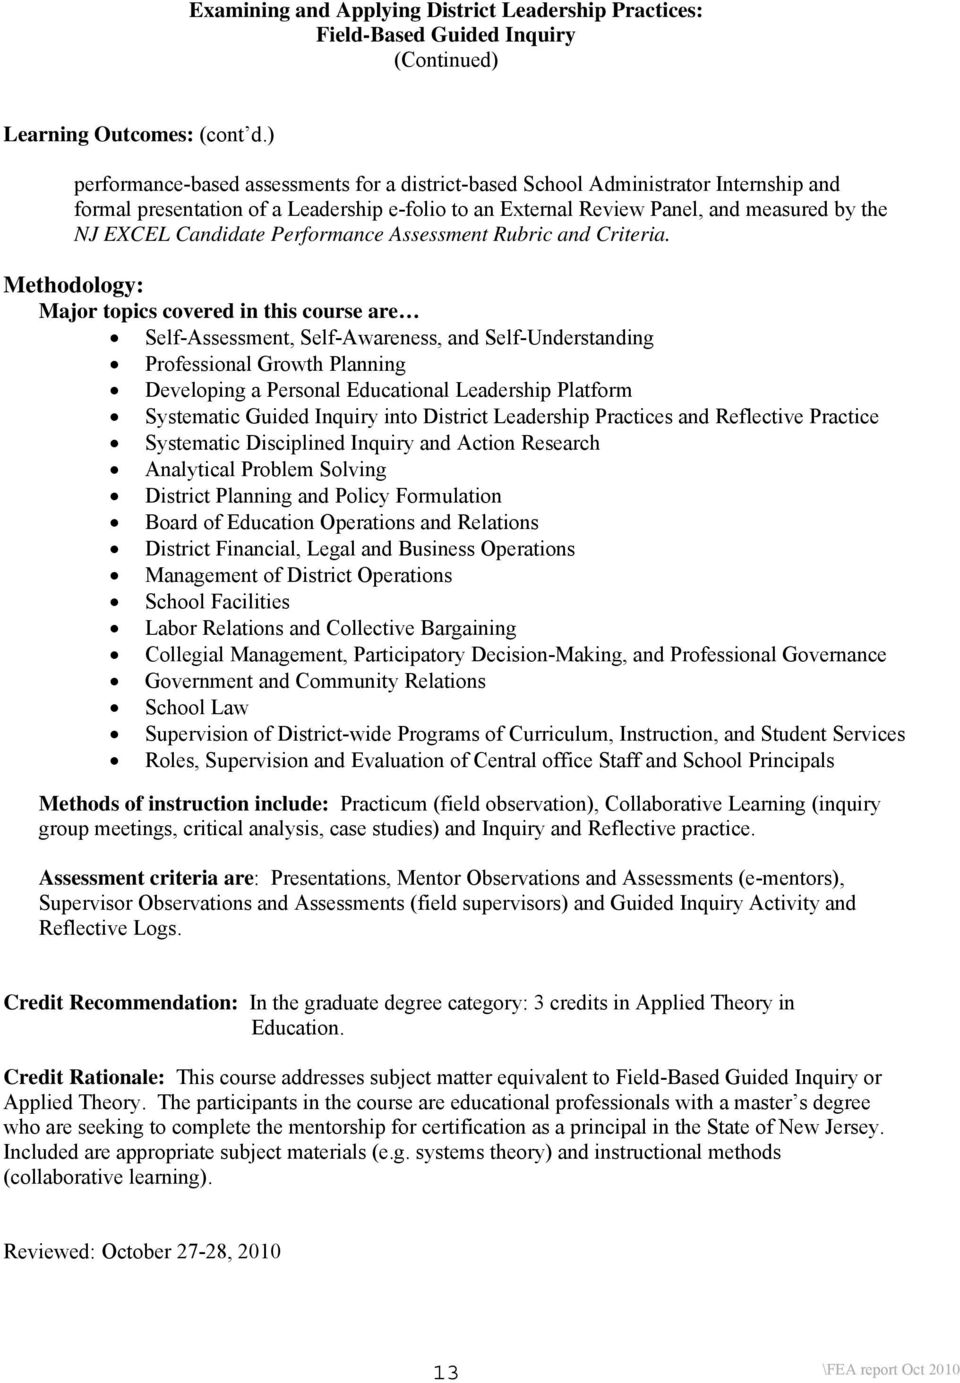 Academic Program Review Foundation For Educational